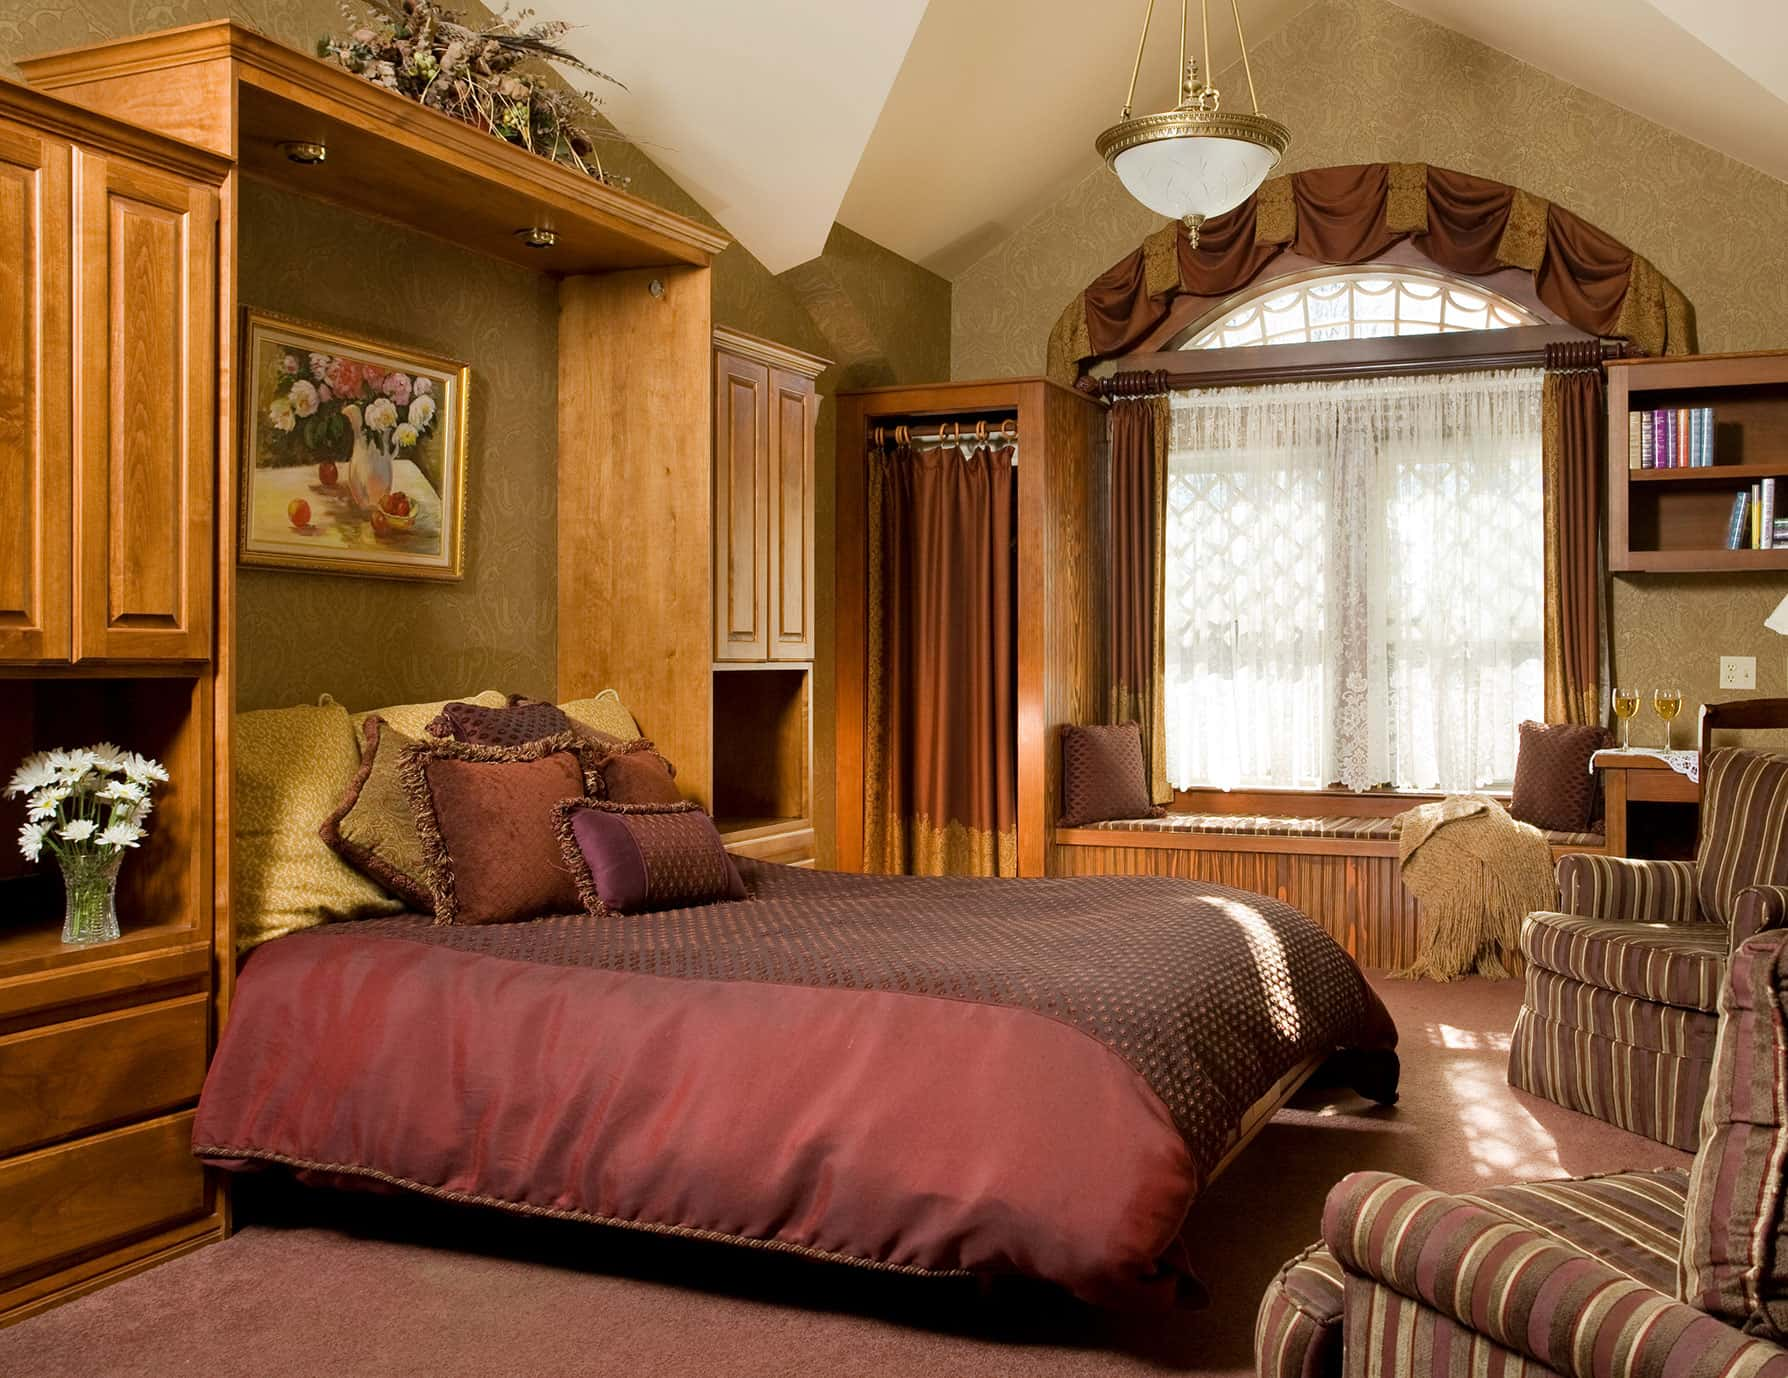 Plush Murphy bed in the wood-furnished Room 10